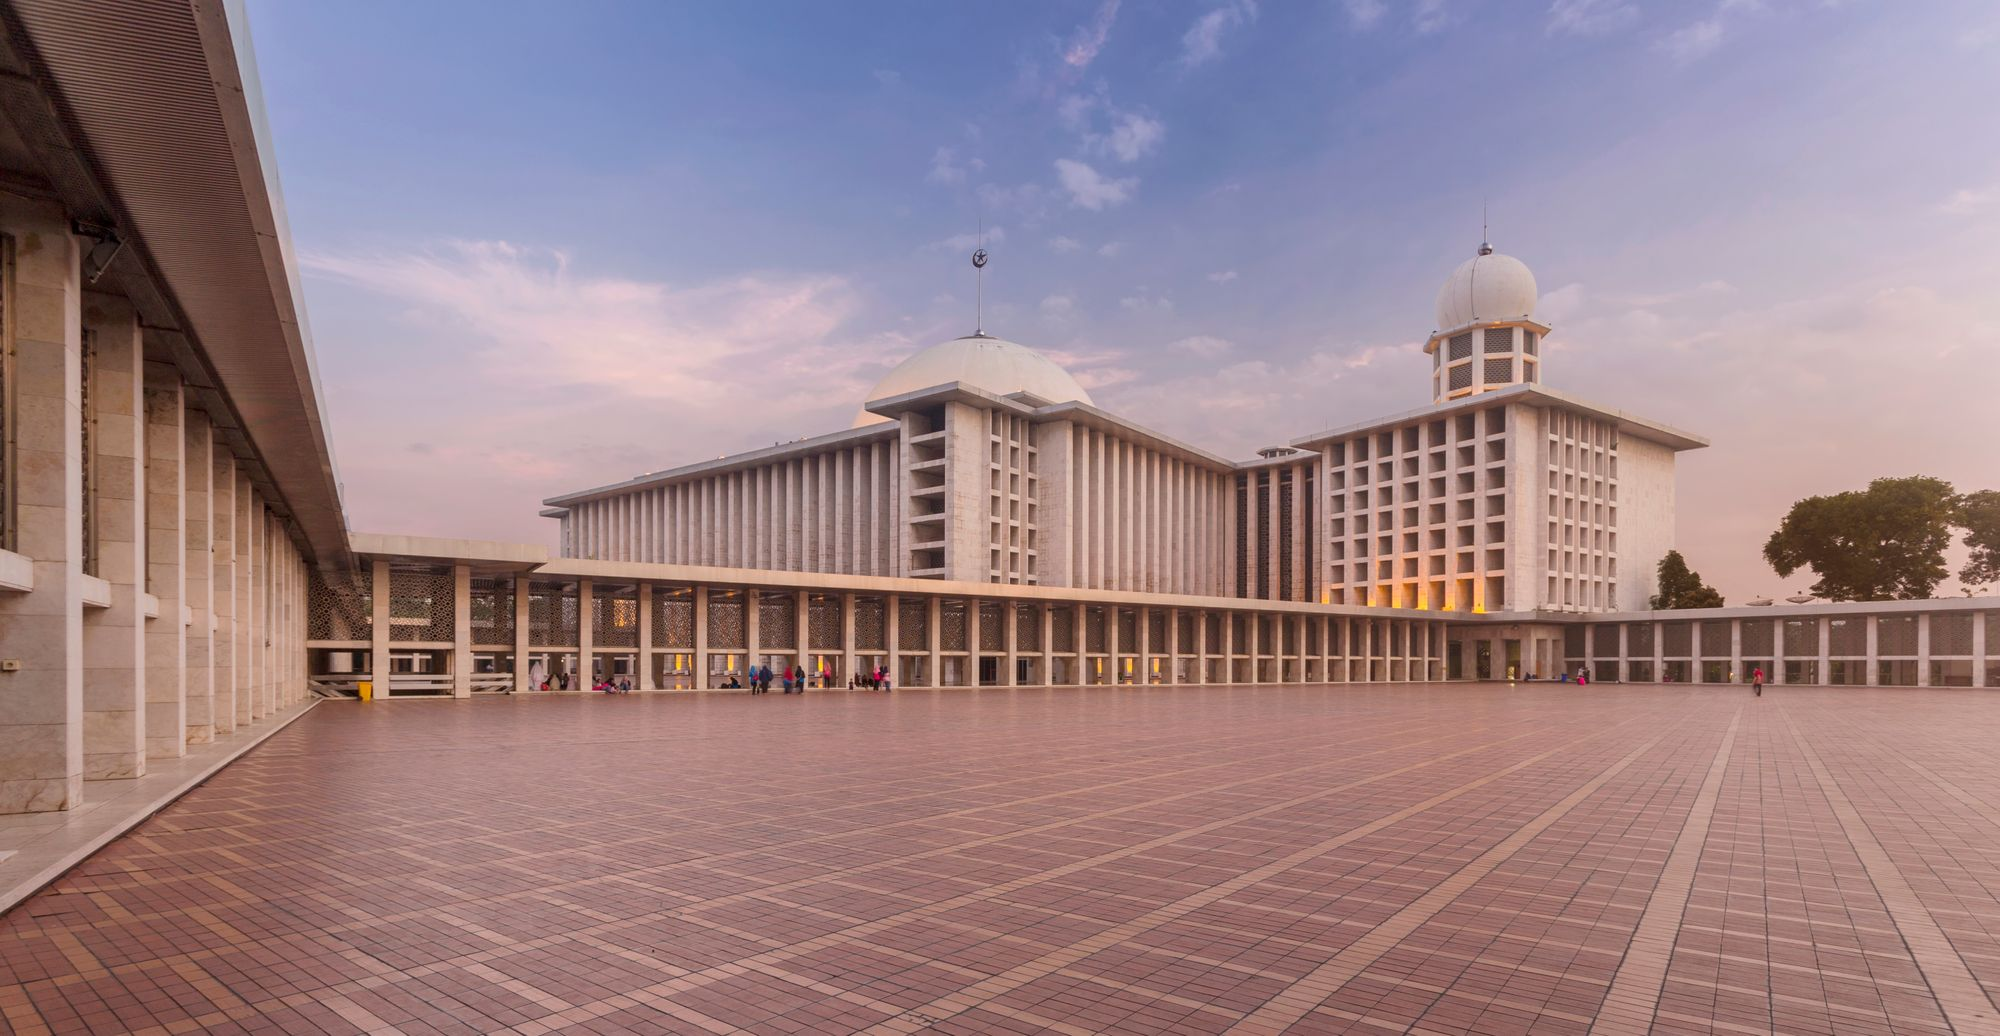 The Grand Istiqlal Mosque